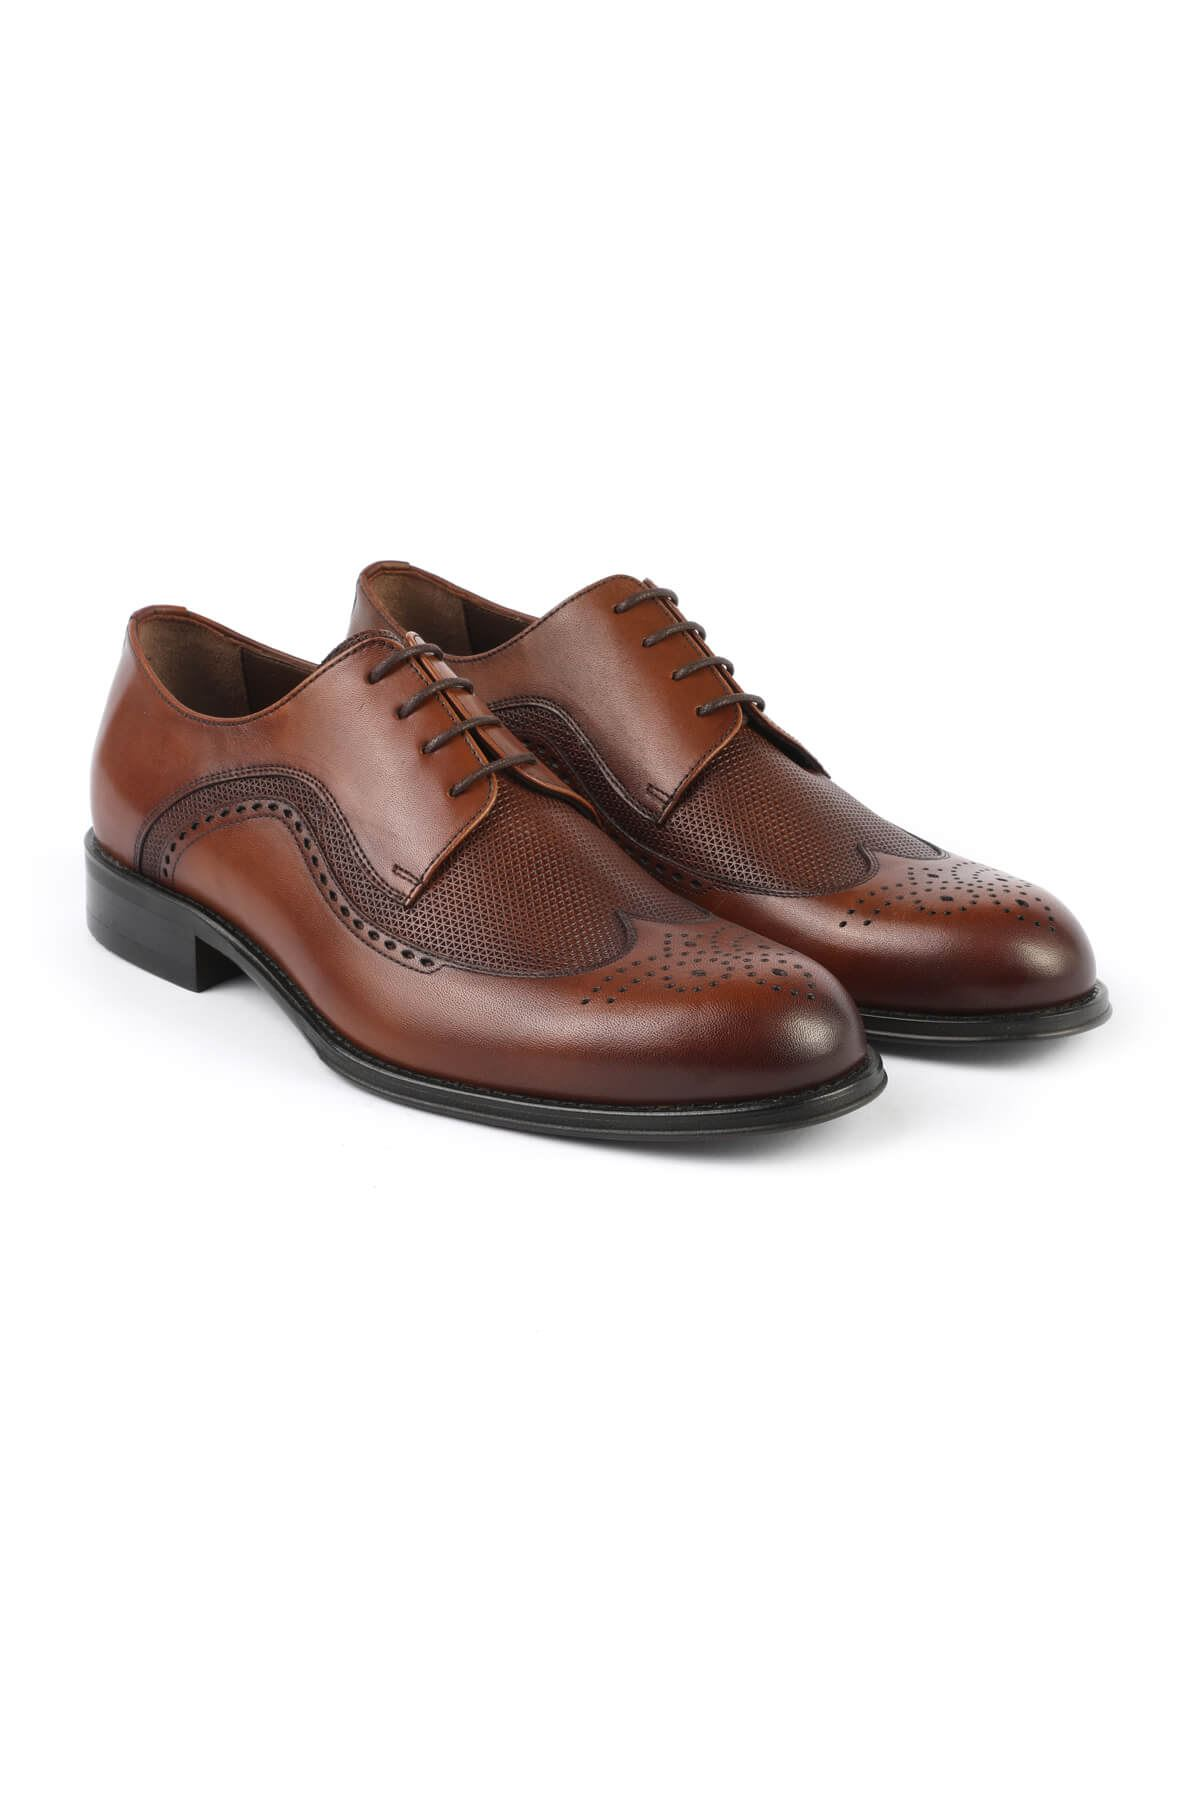 Libero 2873 Brown Classic Shoes